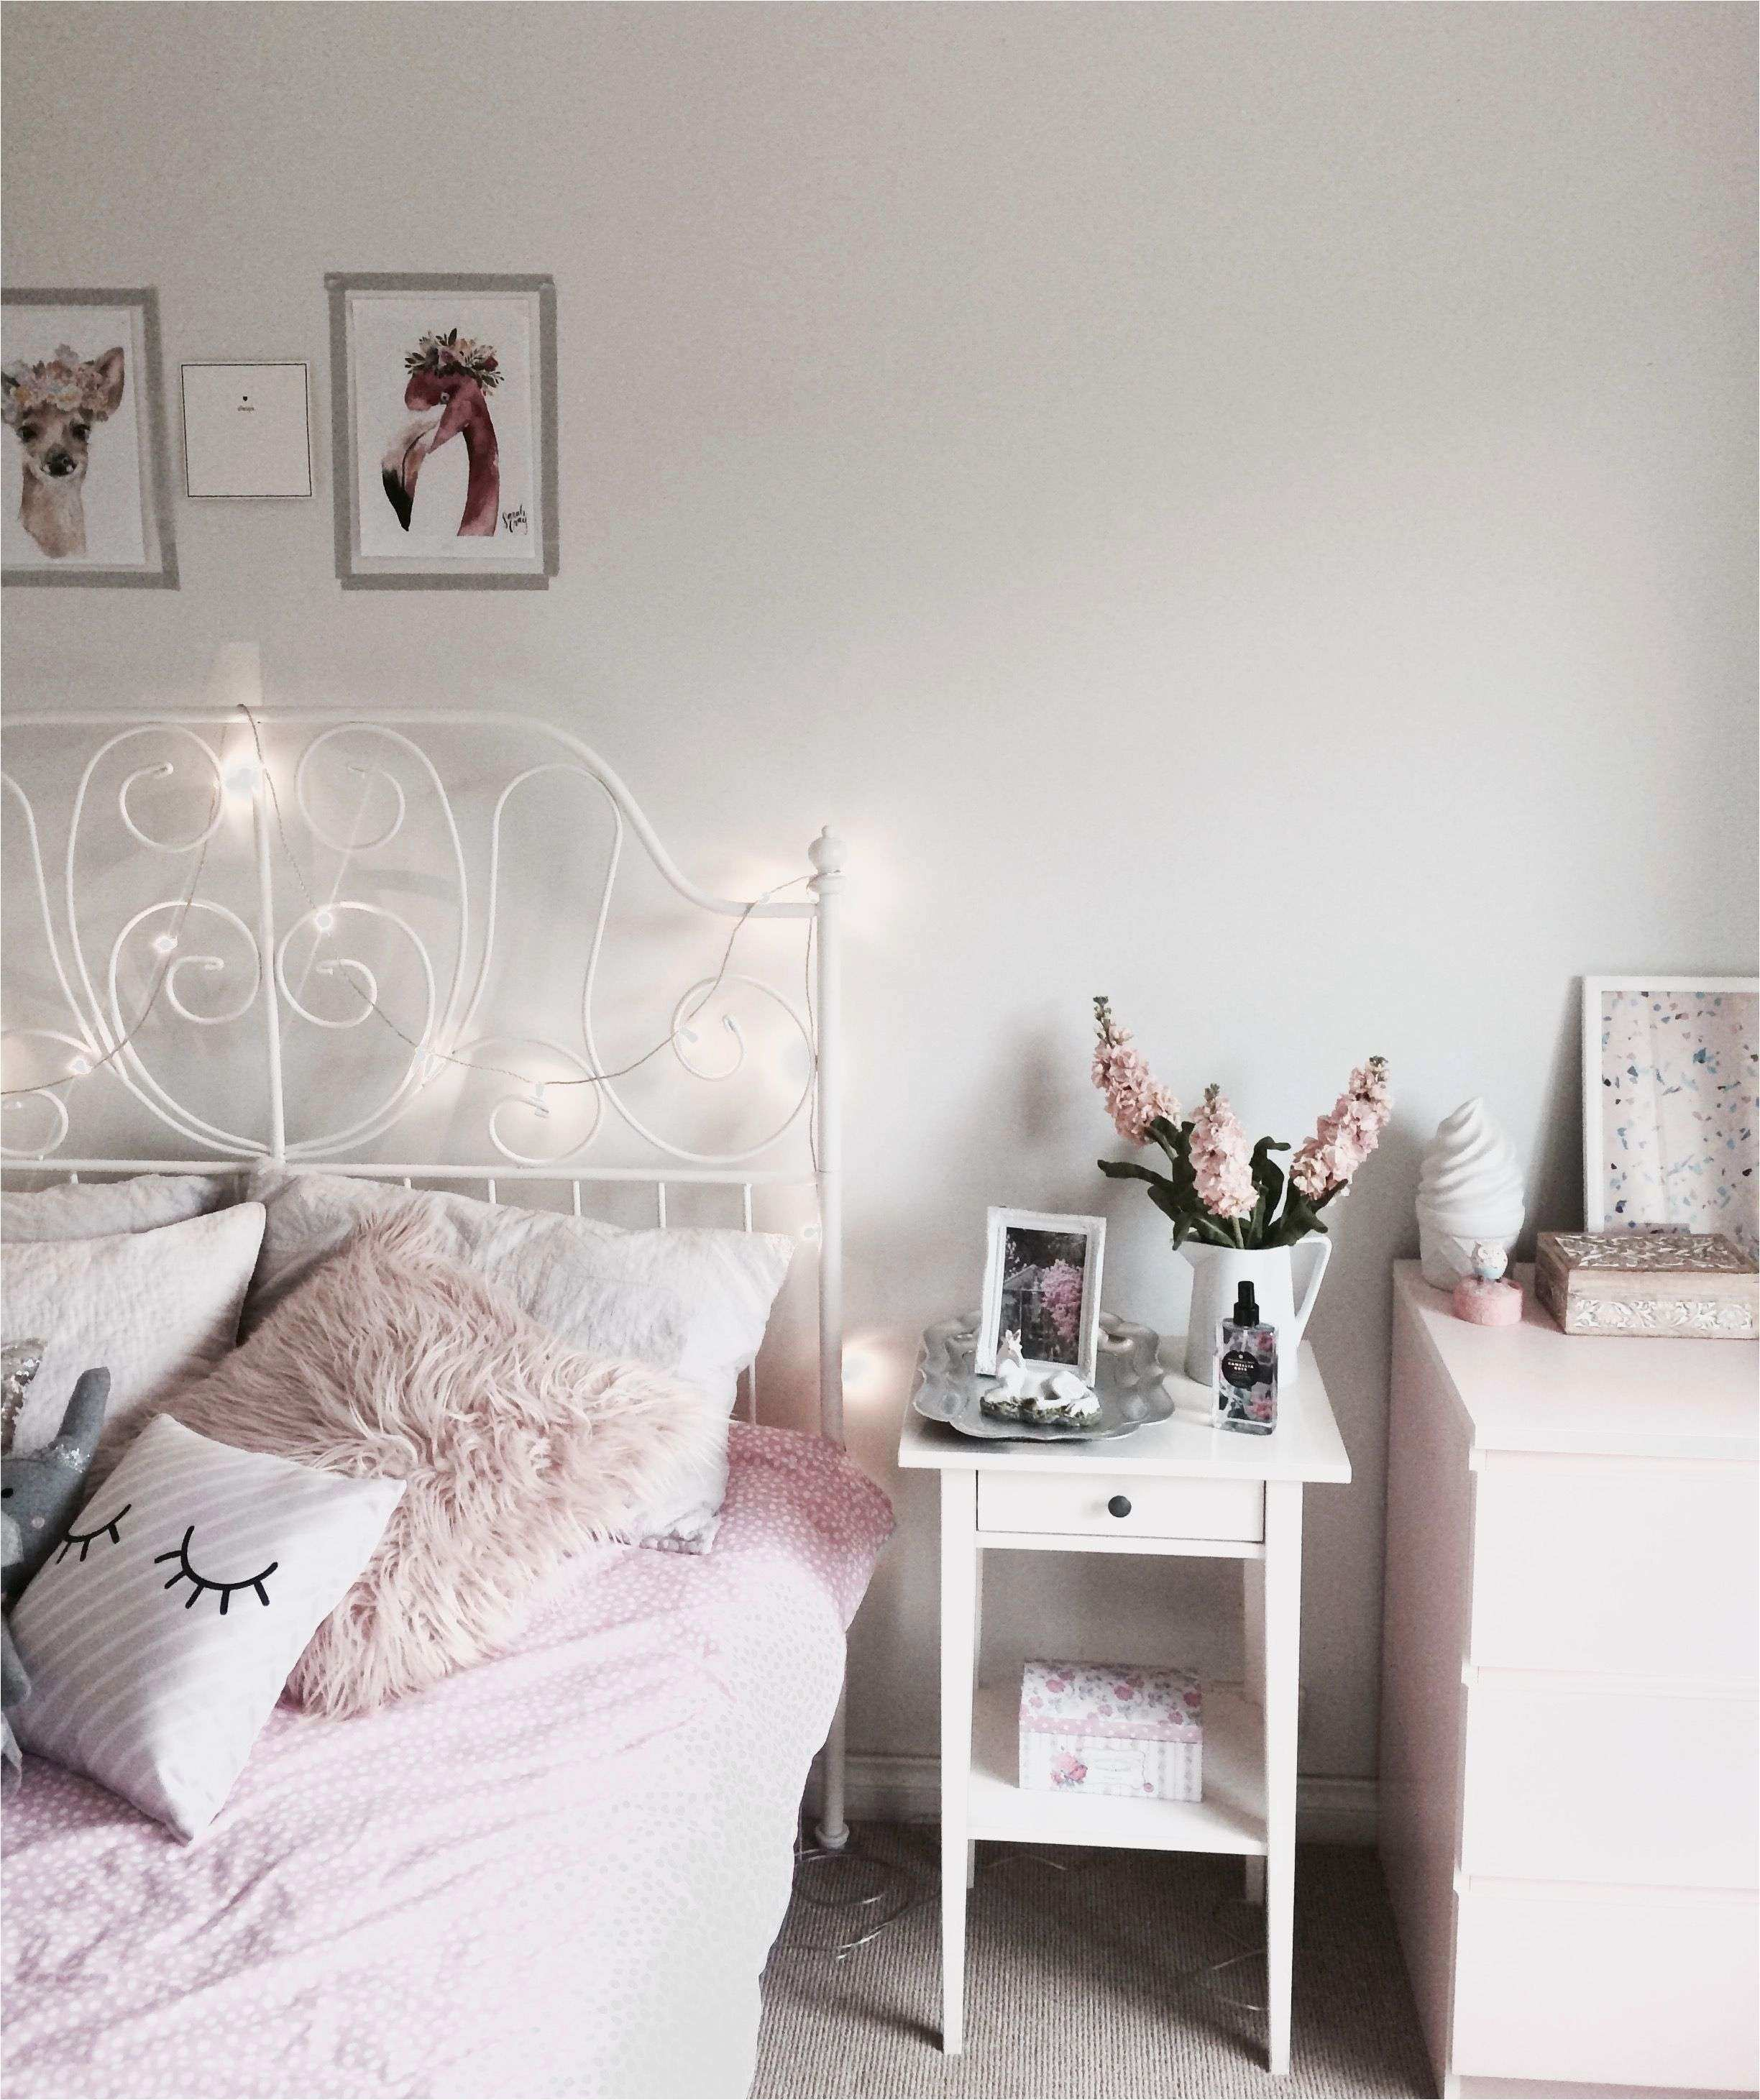 Bedroom Furniture Sets Awesome Awesome Italian Bedroom Furniture Sets